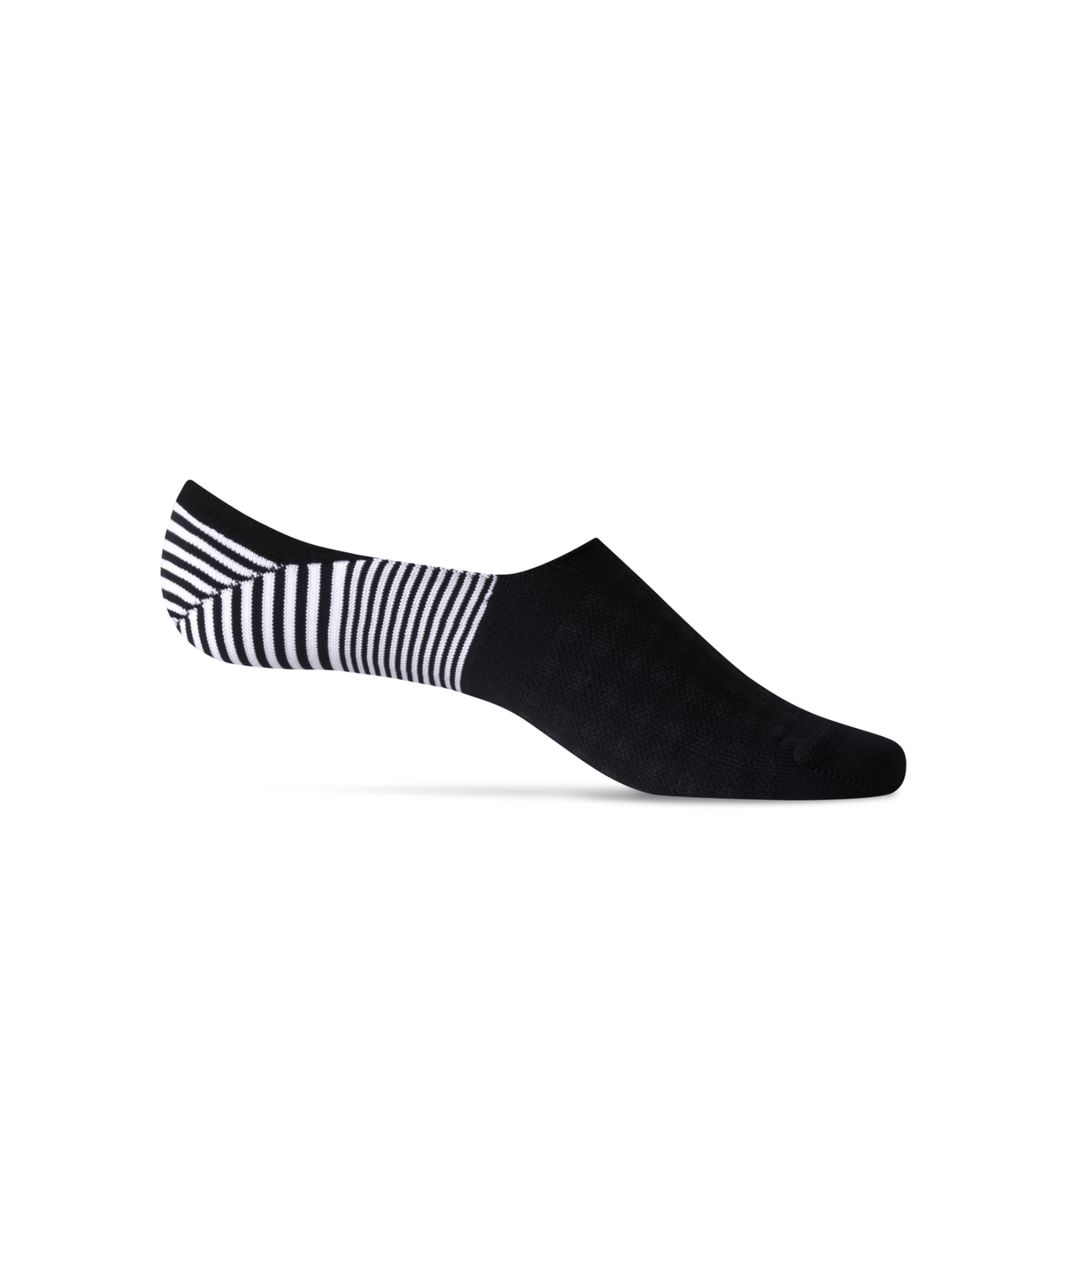 Lululemon Secret Sock - Black / White (First Release)